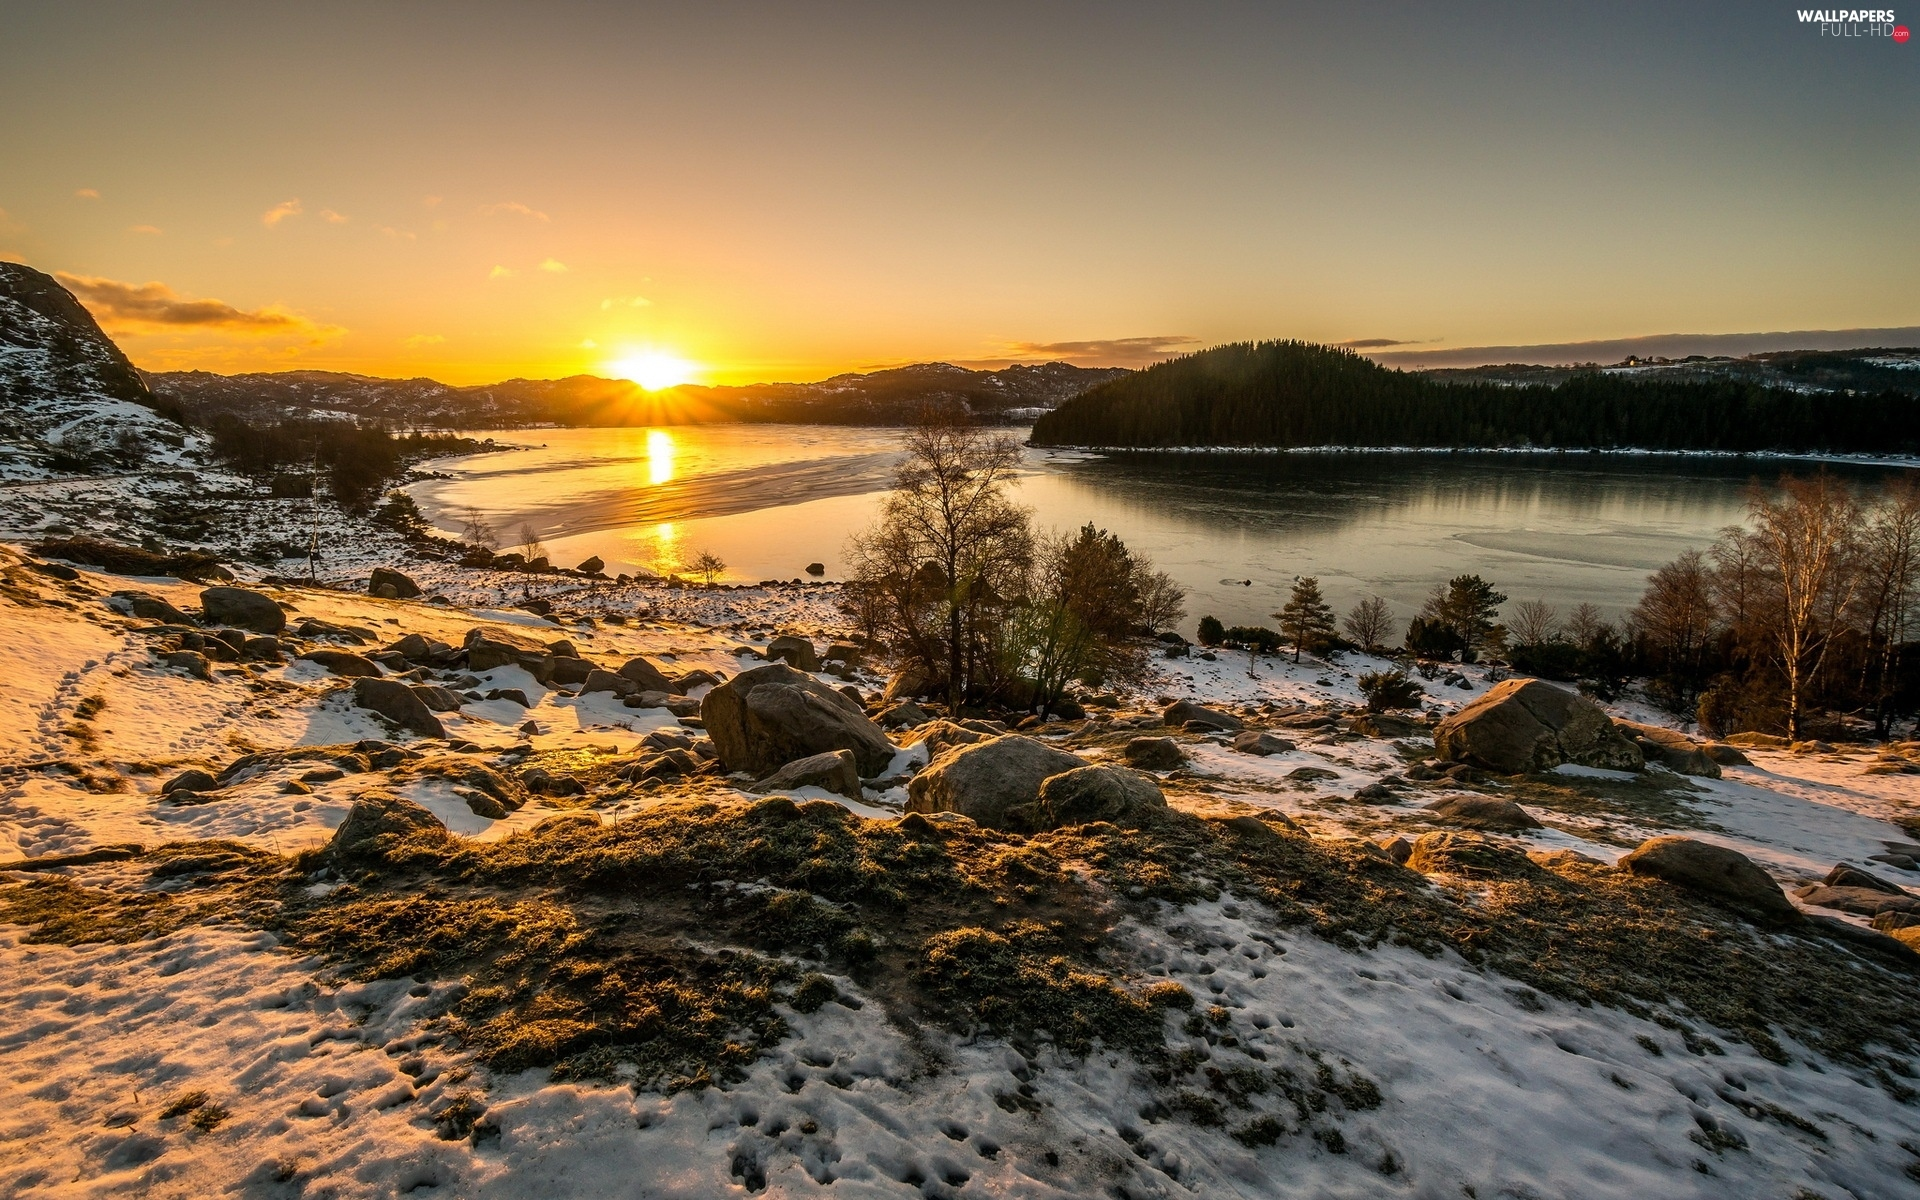 winter, sun, River, The setting